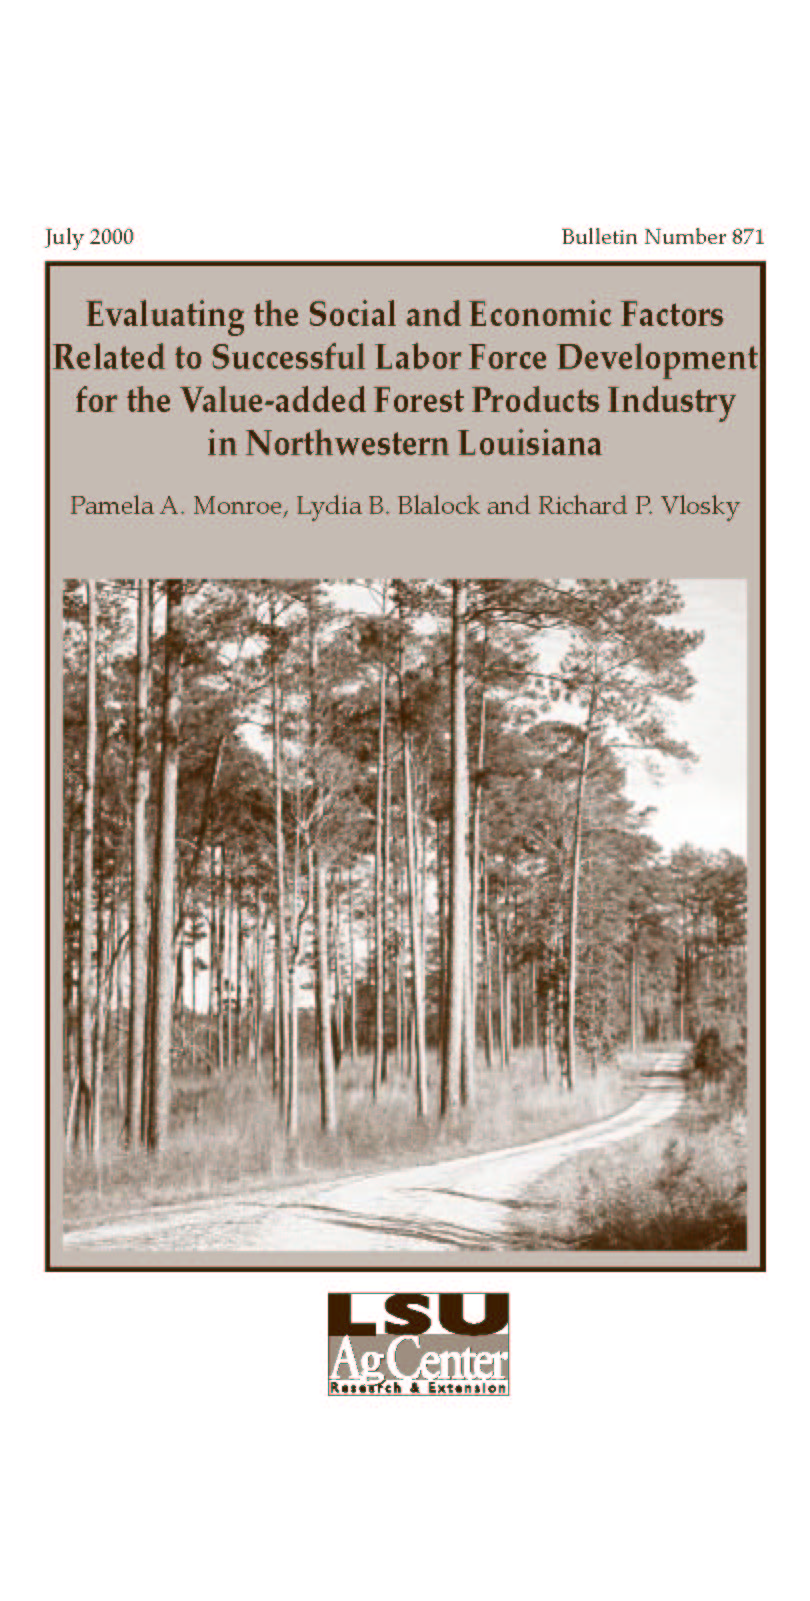 Evaluating the Social and Economic Factors Related to Successful Labor Force Development for the Value-added Forest Products Industry in Northwestern Louisiana (July 2000)